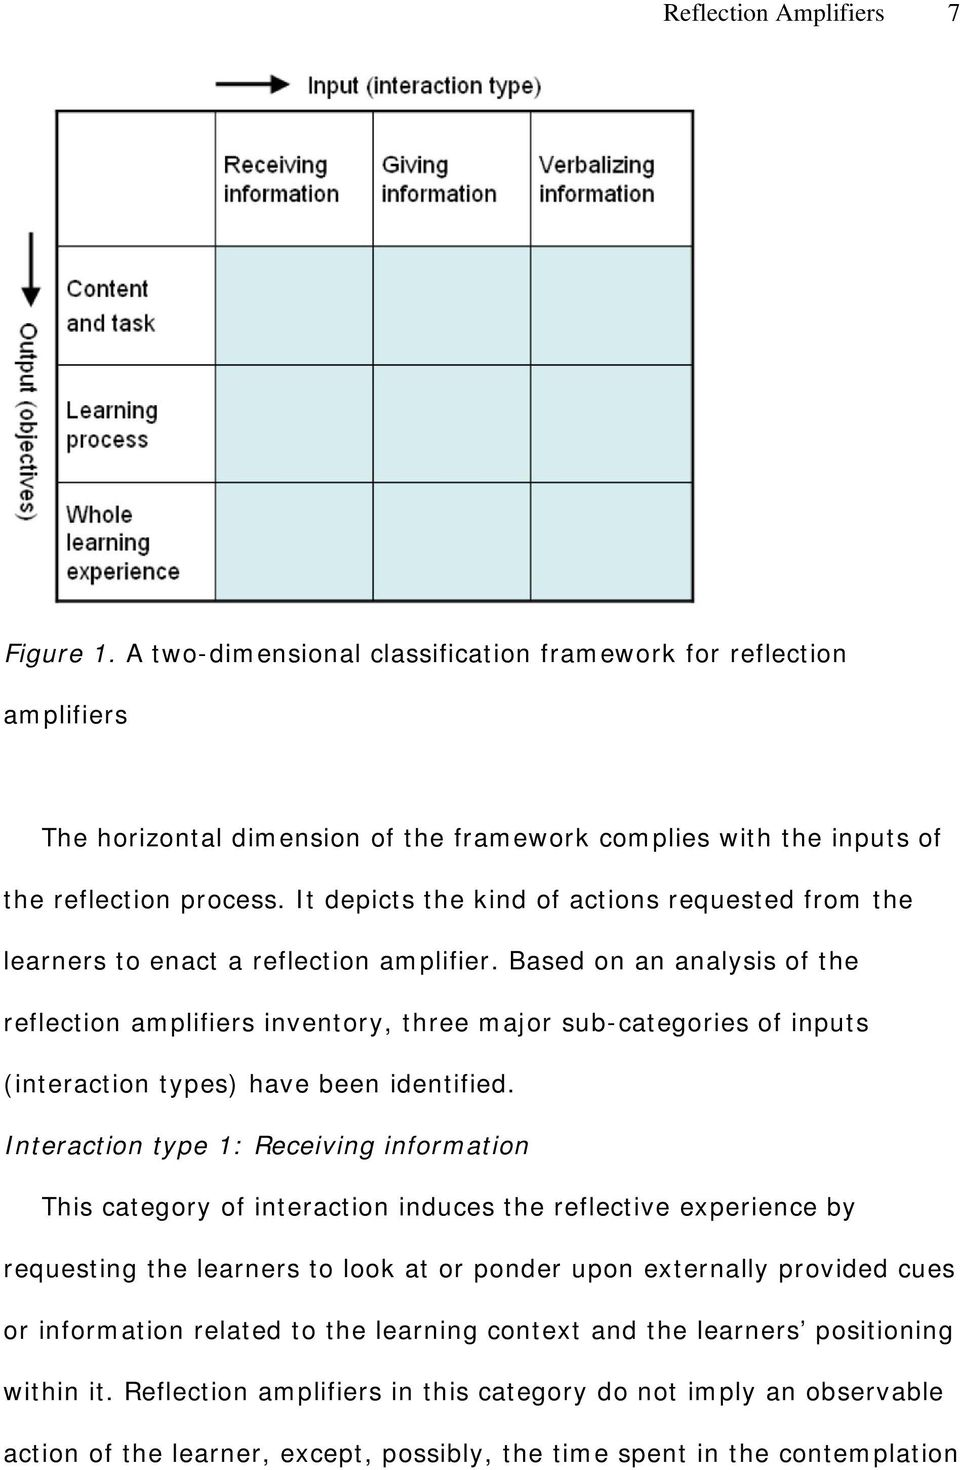 Based on an analysis of the reflection amplifiers inventory, three major sub-categories of inputs (interaction types) have been identified.